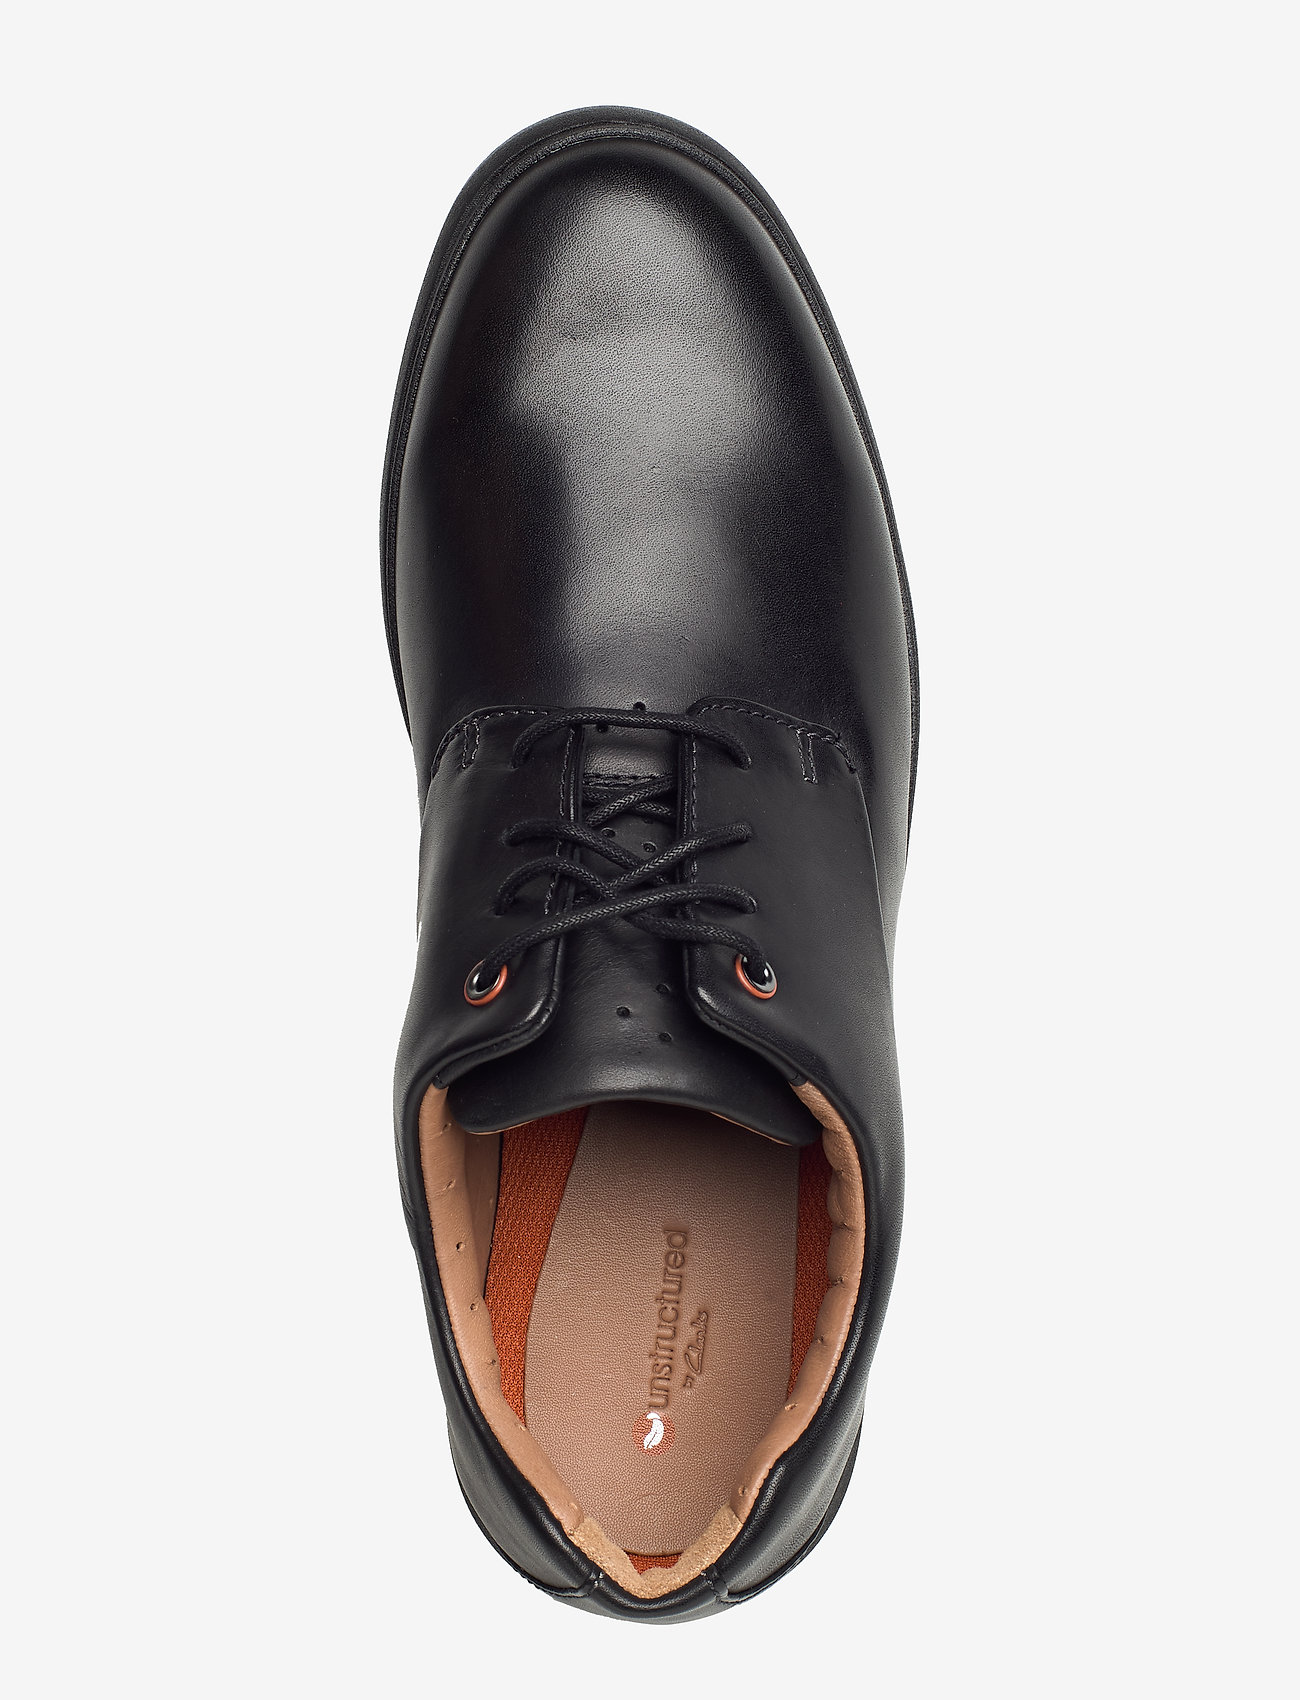 Un Voyageplain (Black Leather) - Clarks